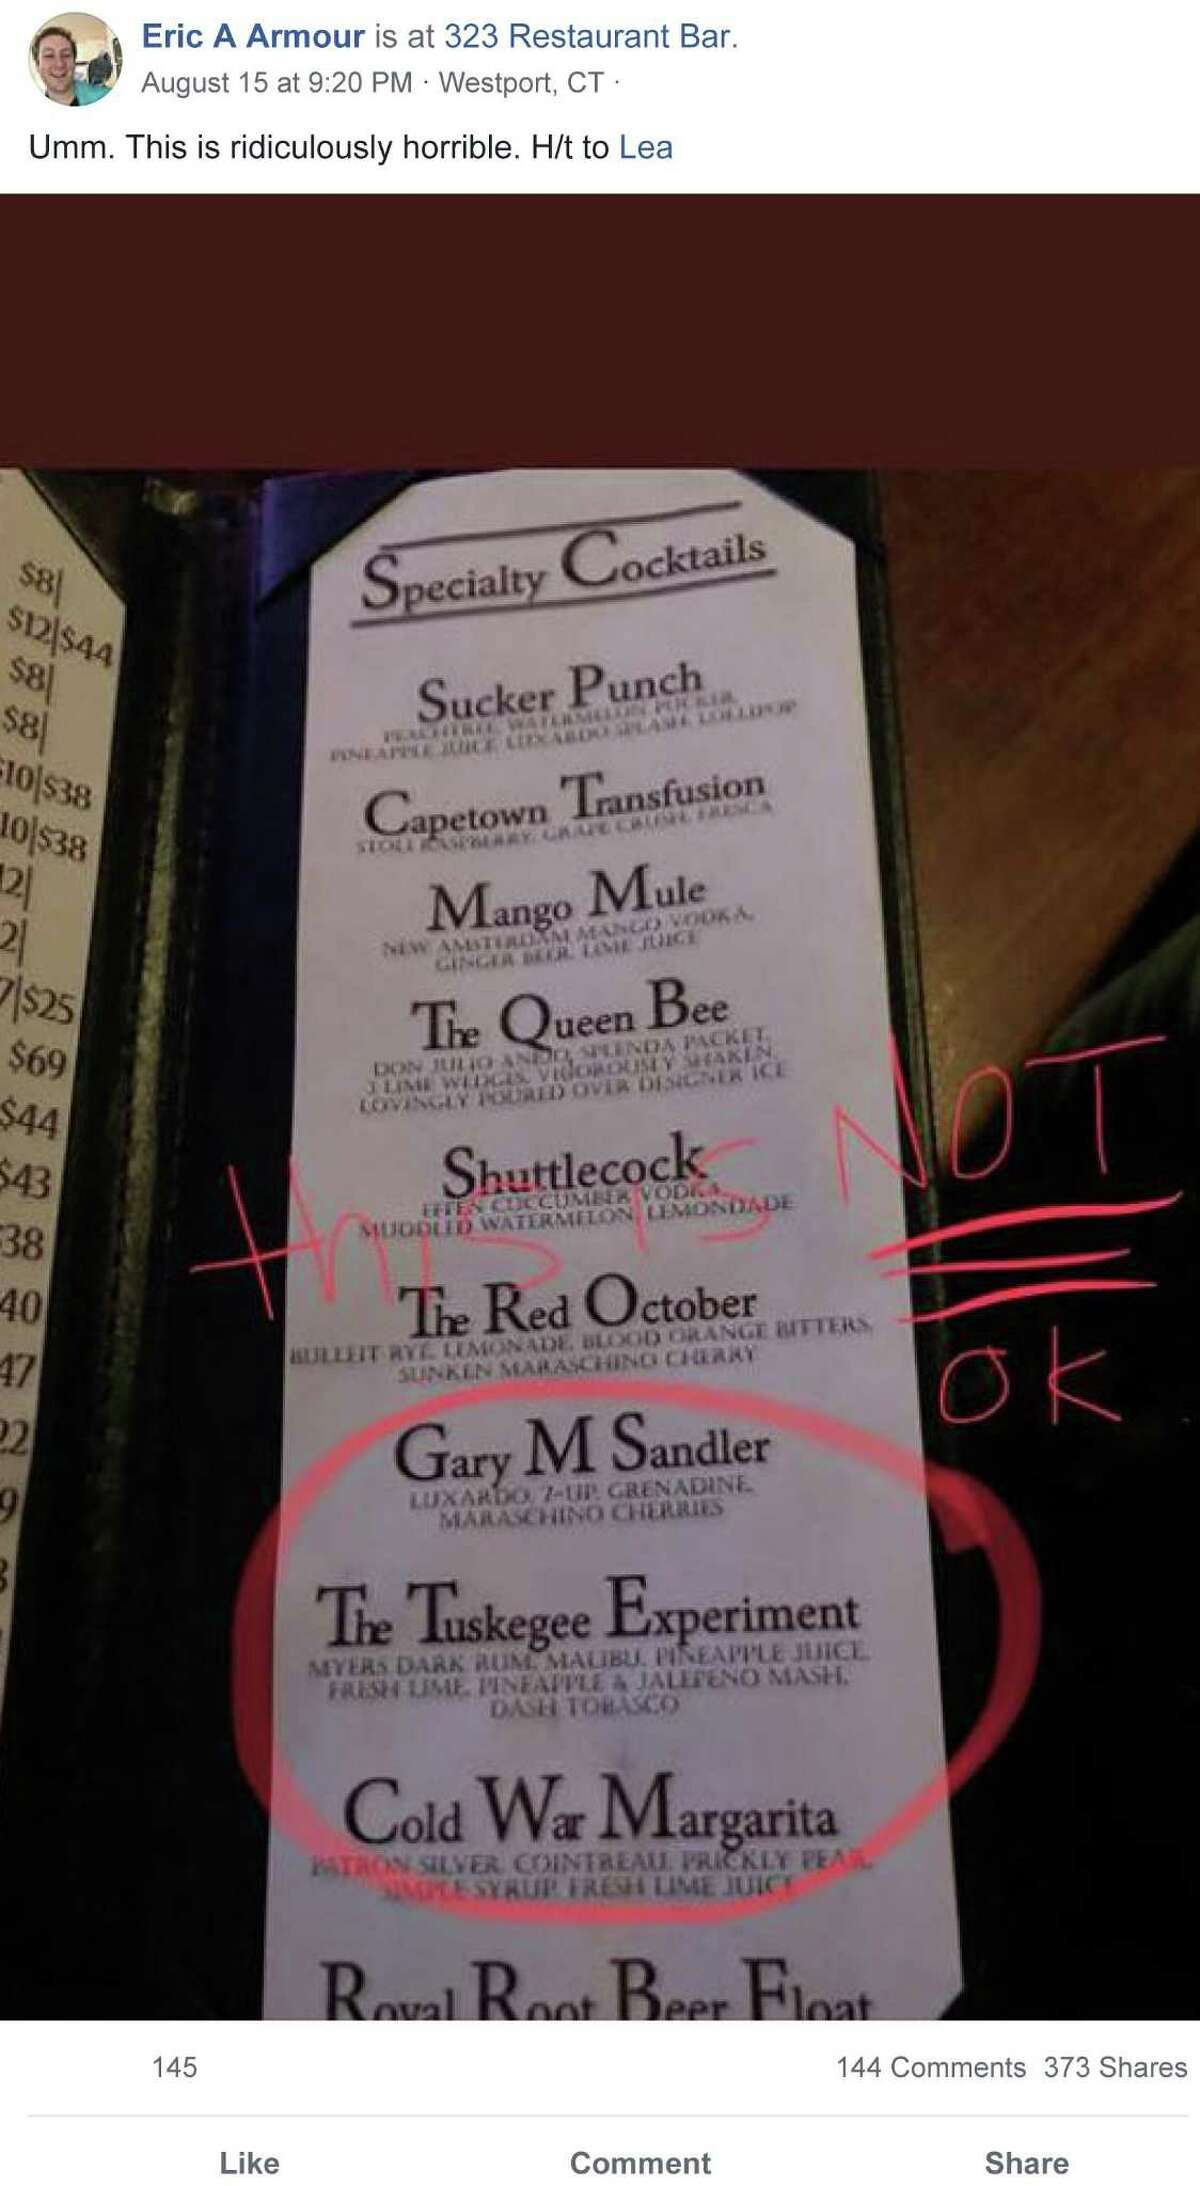 On Aug. 15, Eric A Armour posted a photo of the specialty cocktail menu at 323 Restaurant in Westport, which included a cocktail called